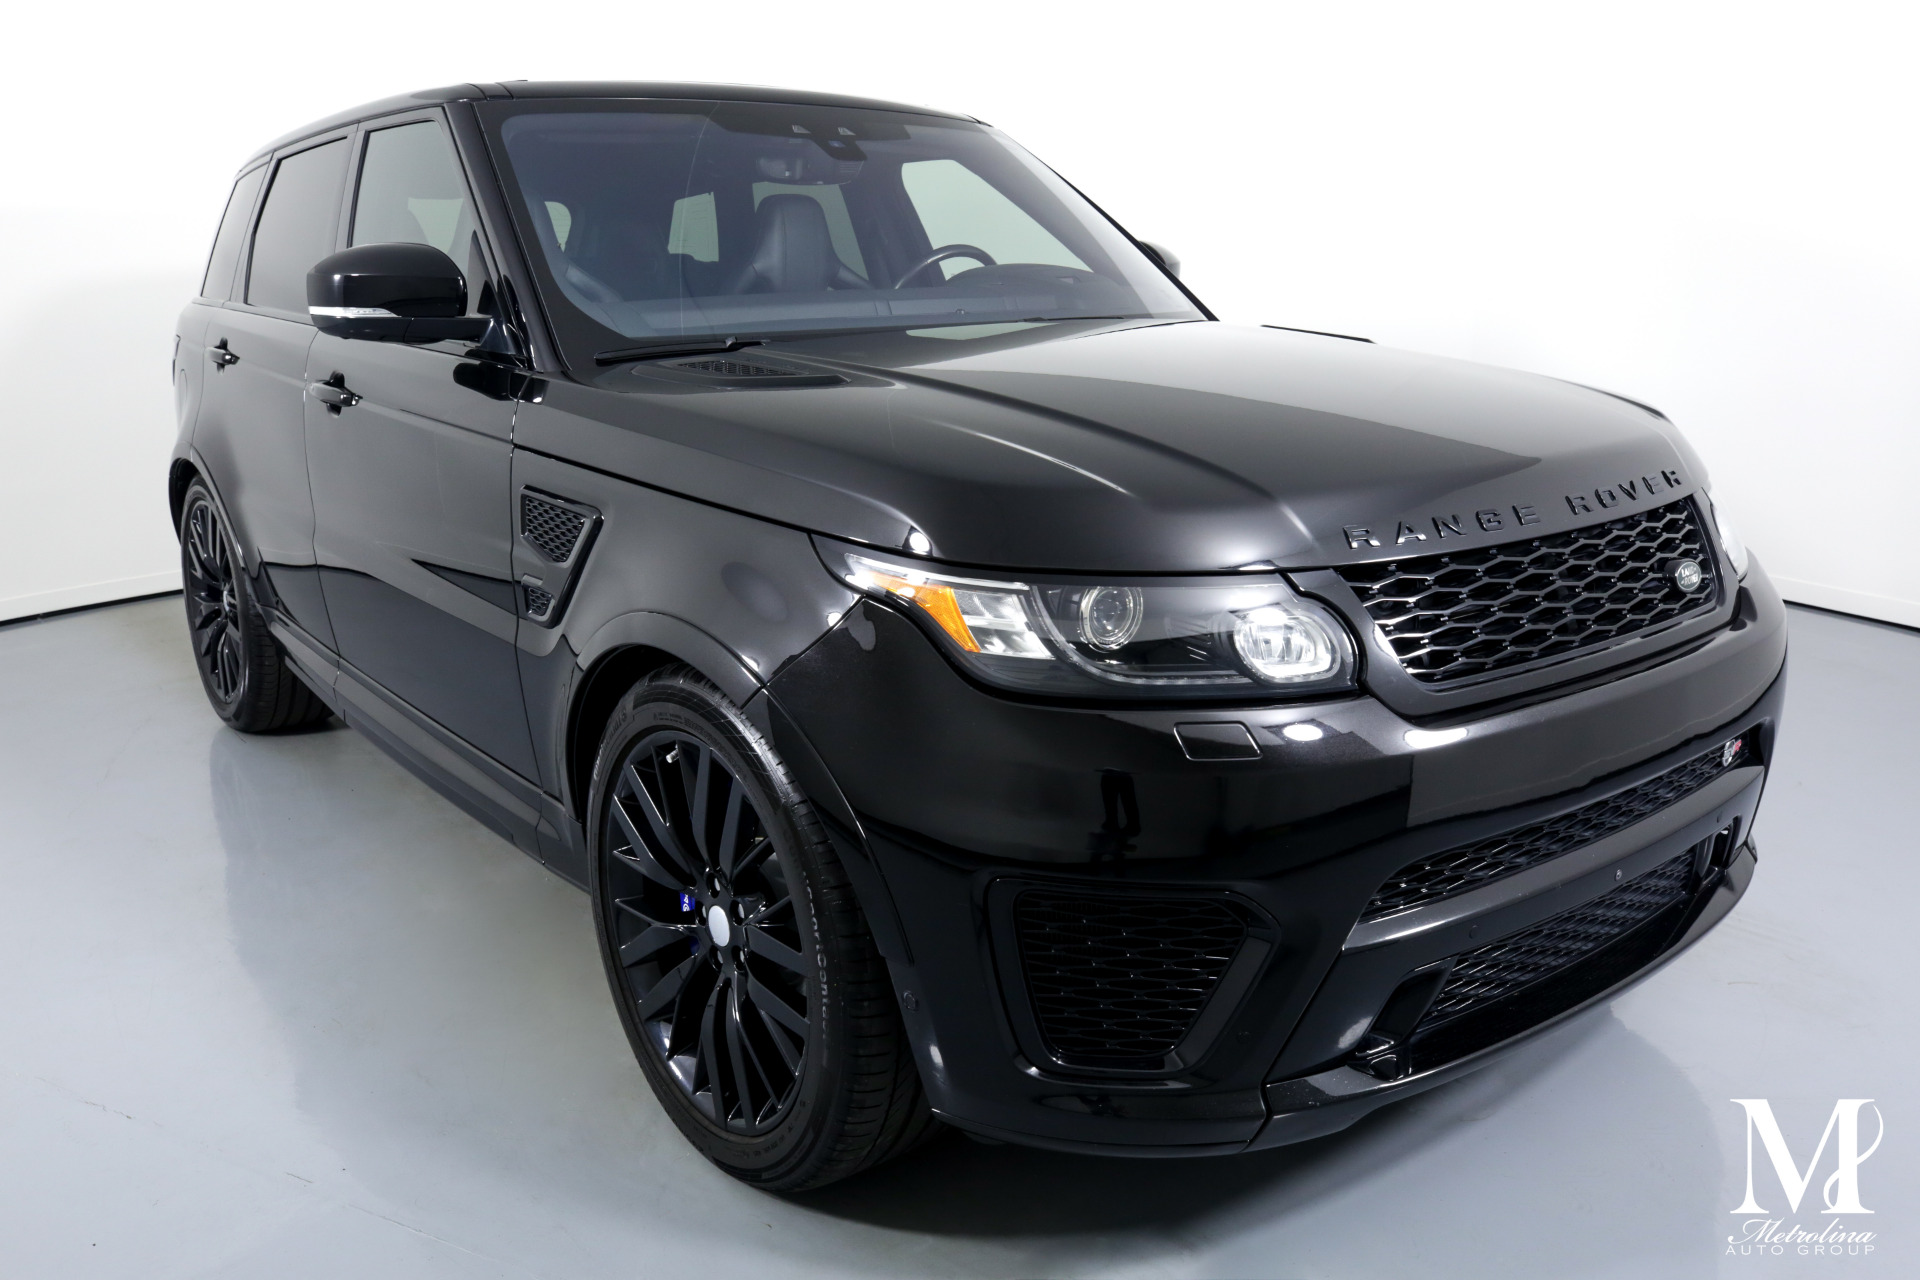 Used 2017 Land Rover Range Rover Sport SVR for sale $69,996 at Metrolina Auto Group in Charlotte NC 28217 - 2